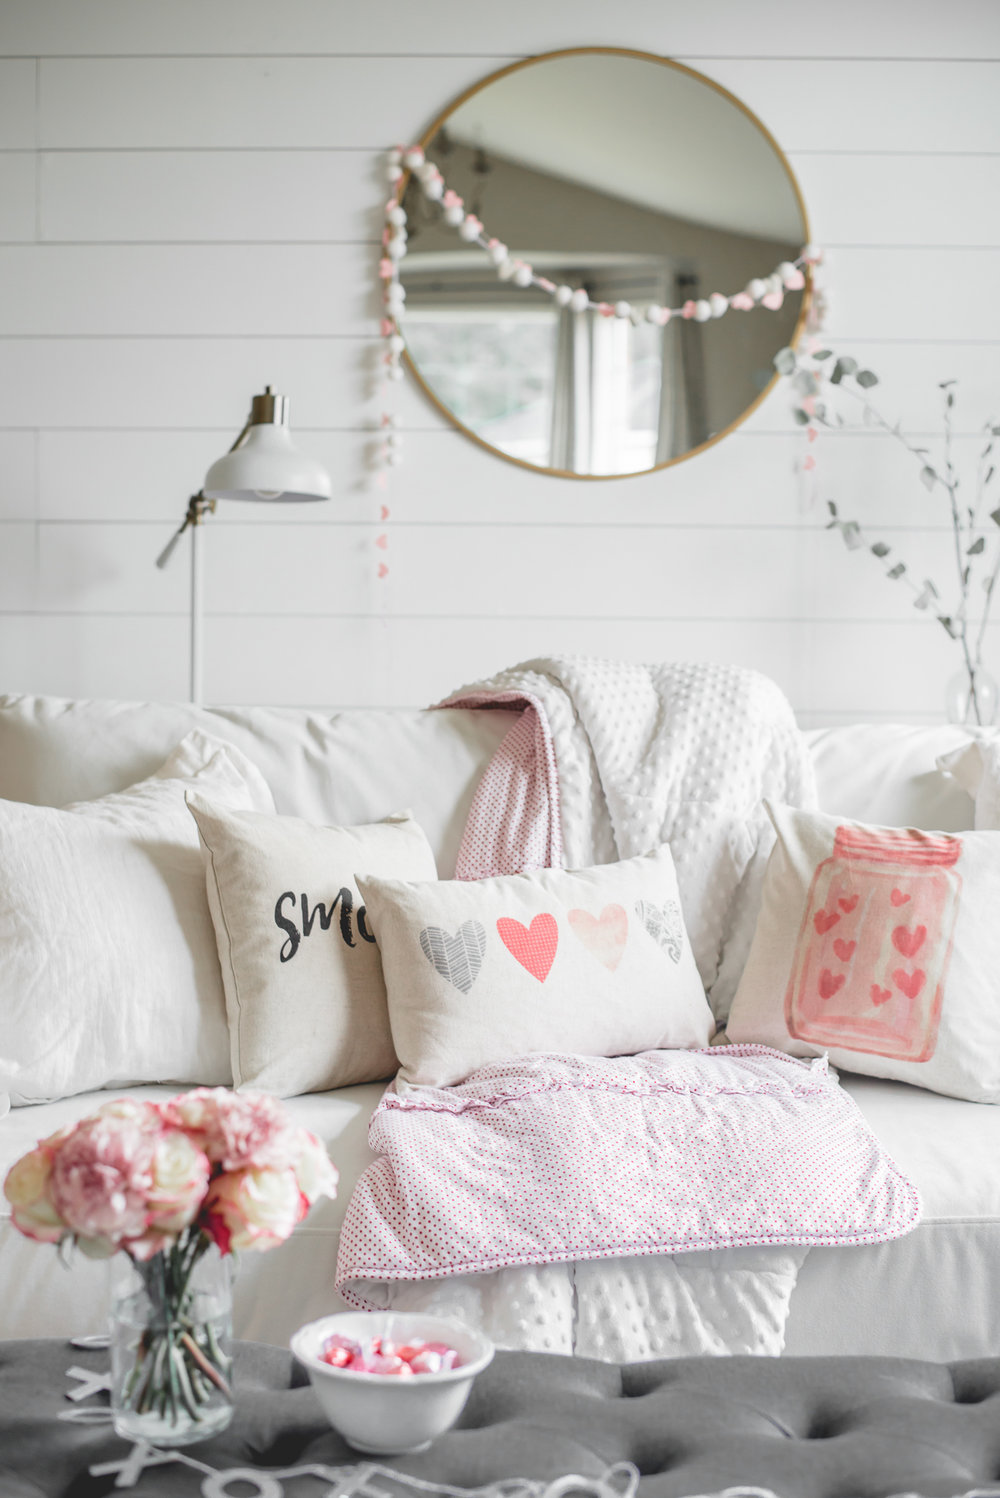 Valentines Day Pillows - So Vintage Chic